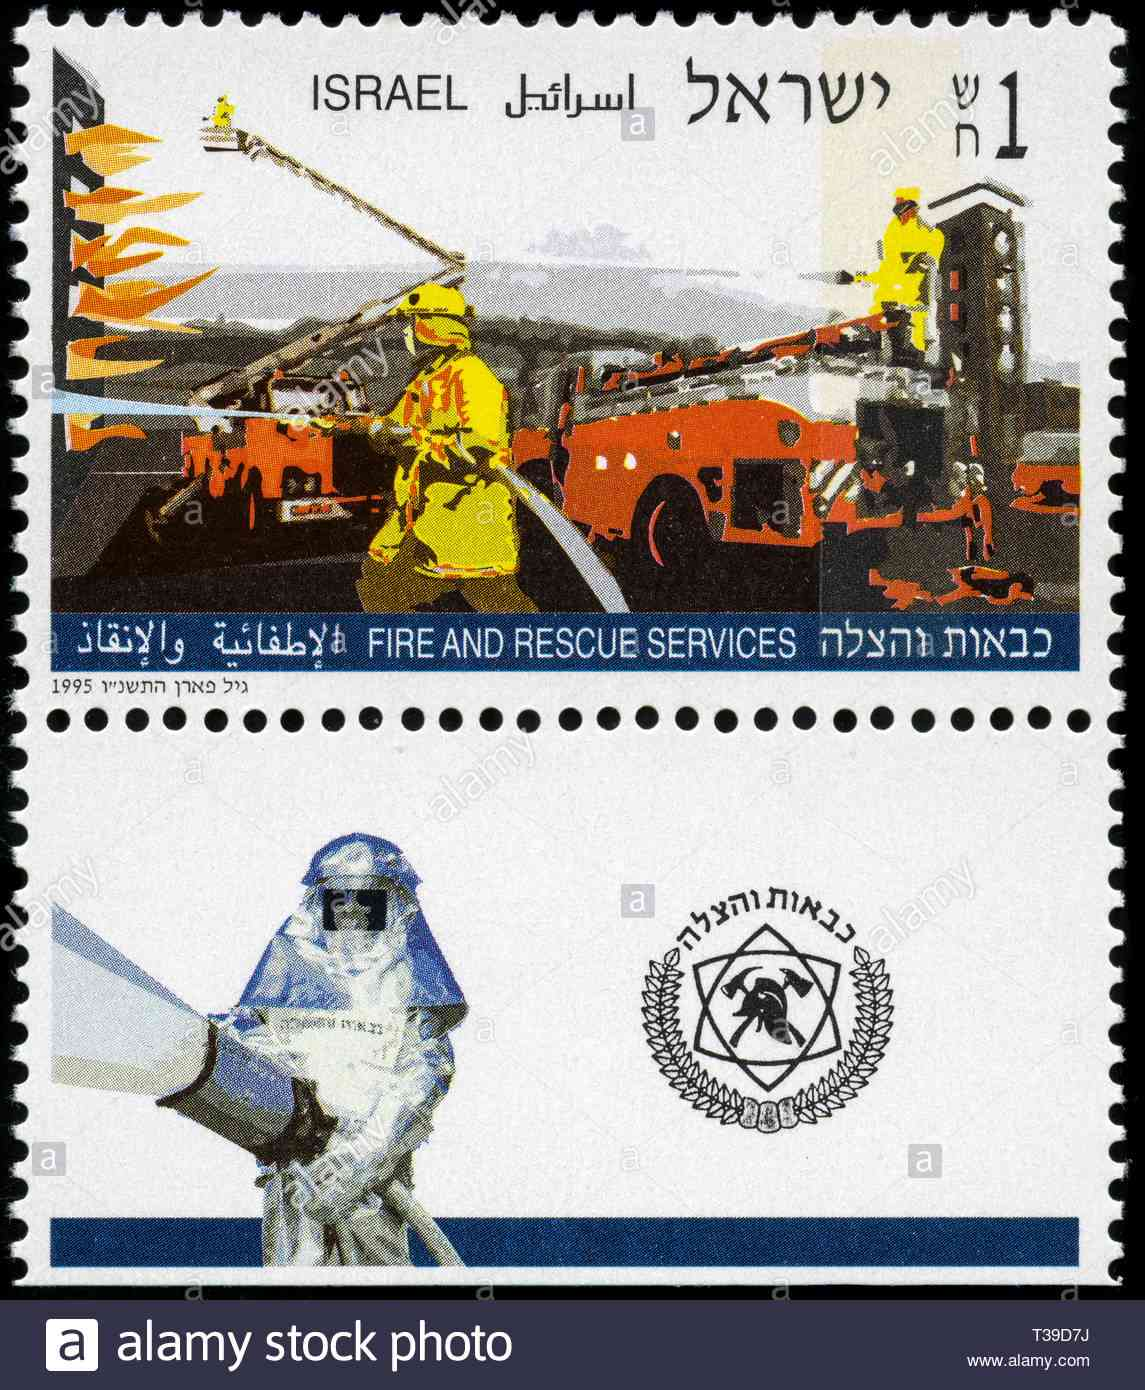 postage-stamp-from-israel-in-the-fire-and-rescue-services-series-issued-in-1995-T39D7J.jpg